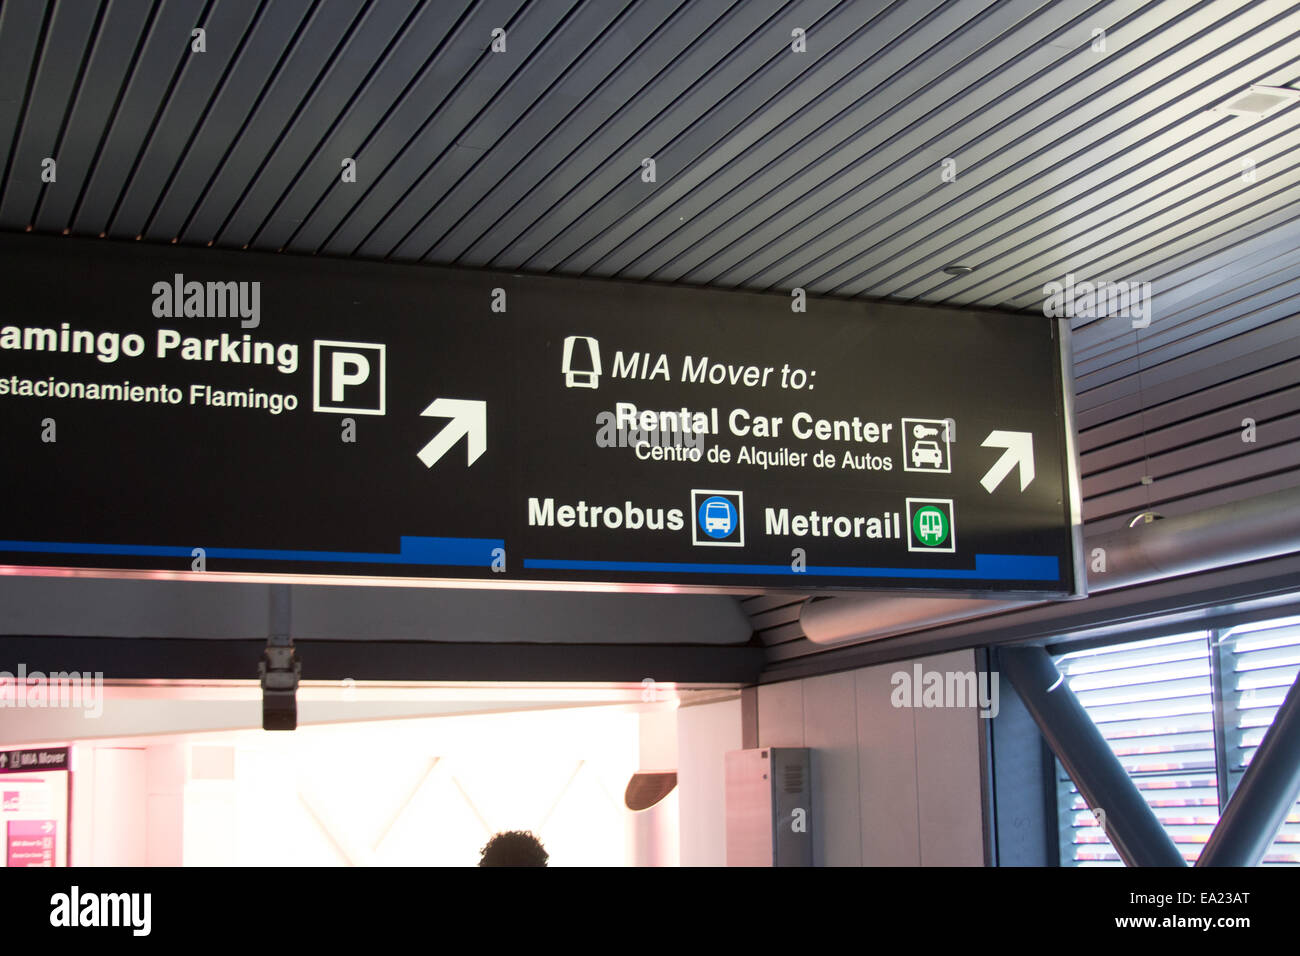 signs to the rental car center and mia mover at miami